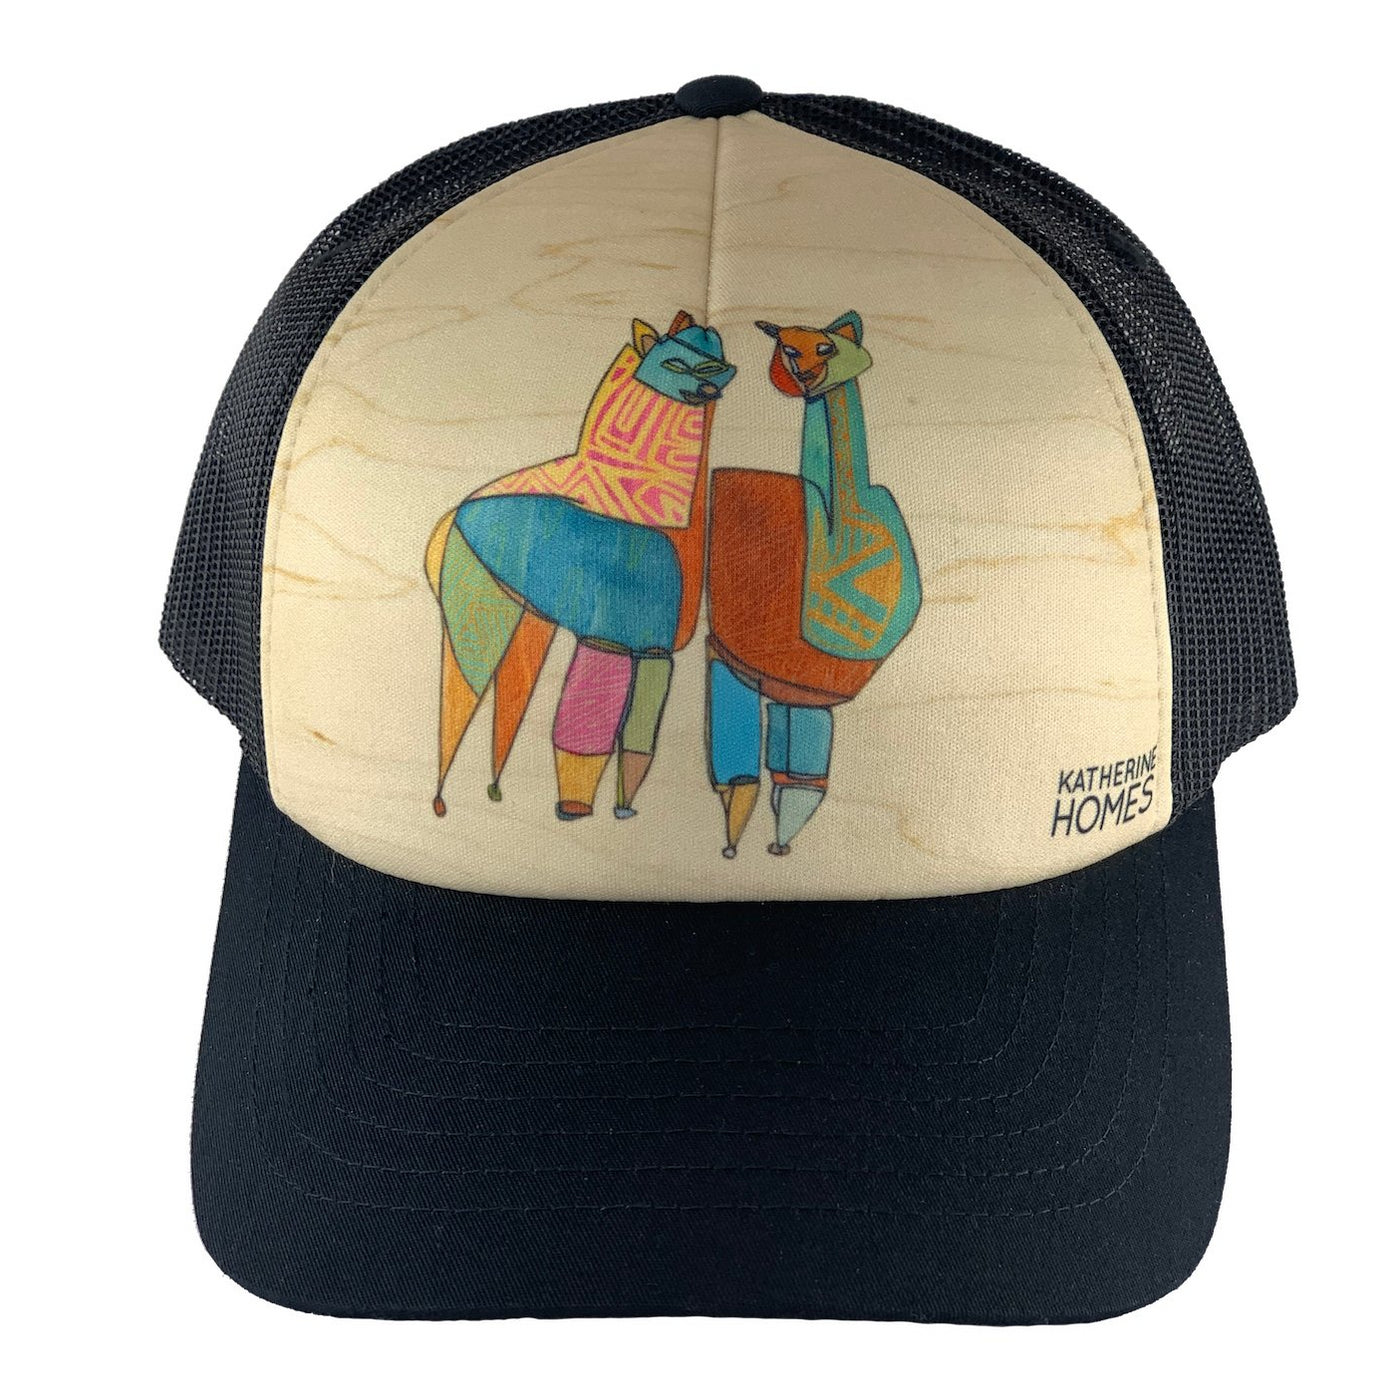 Katherine Homes Guanacos Trucker Hat | Black